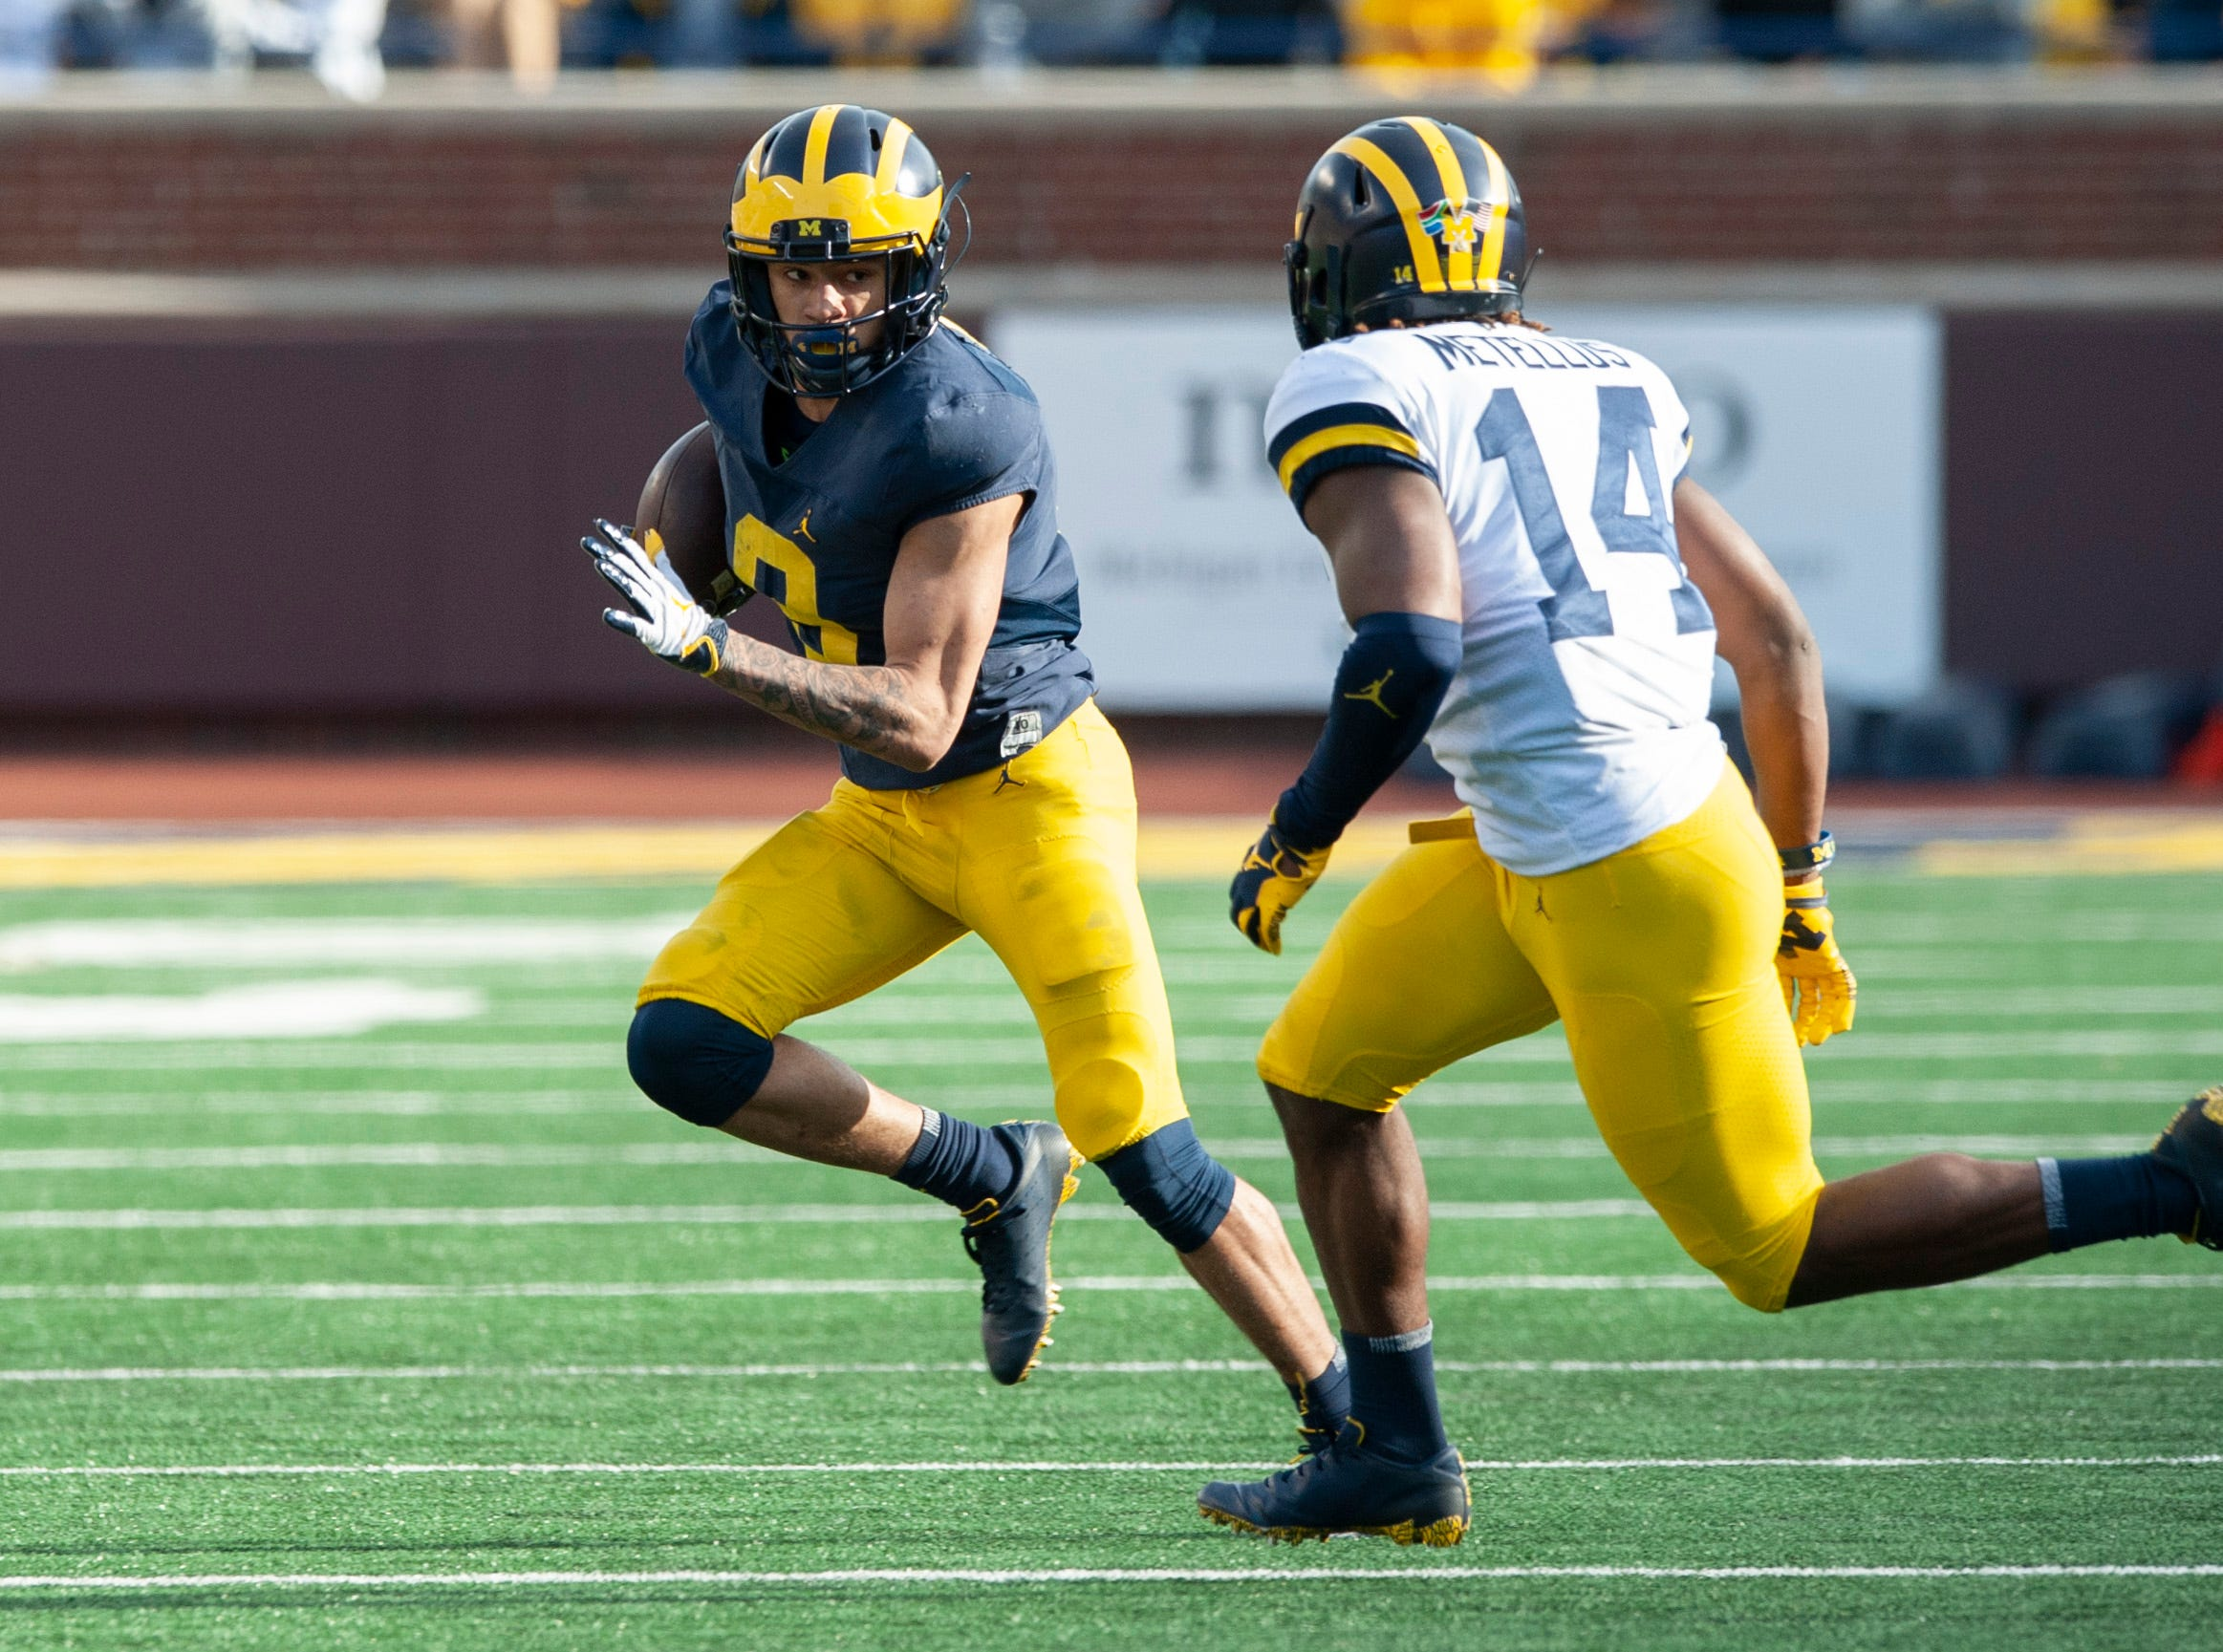 Michigan WR Ronnie Bell eludes DB Josh Metellus (14) on his way to the endzone for a touchdown.